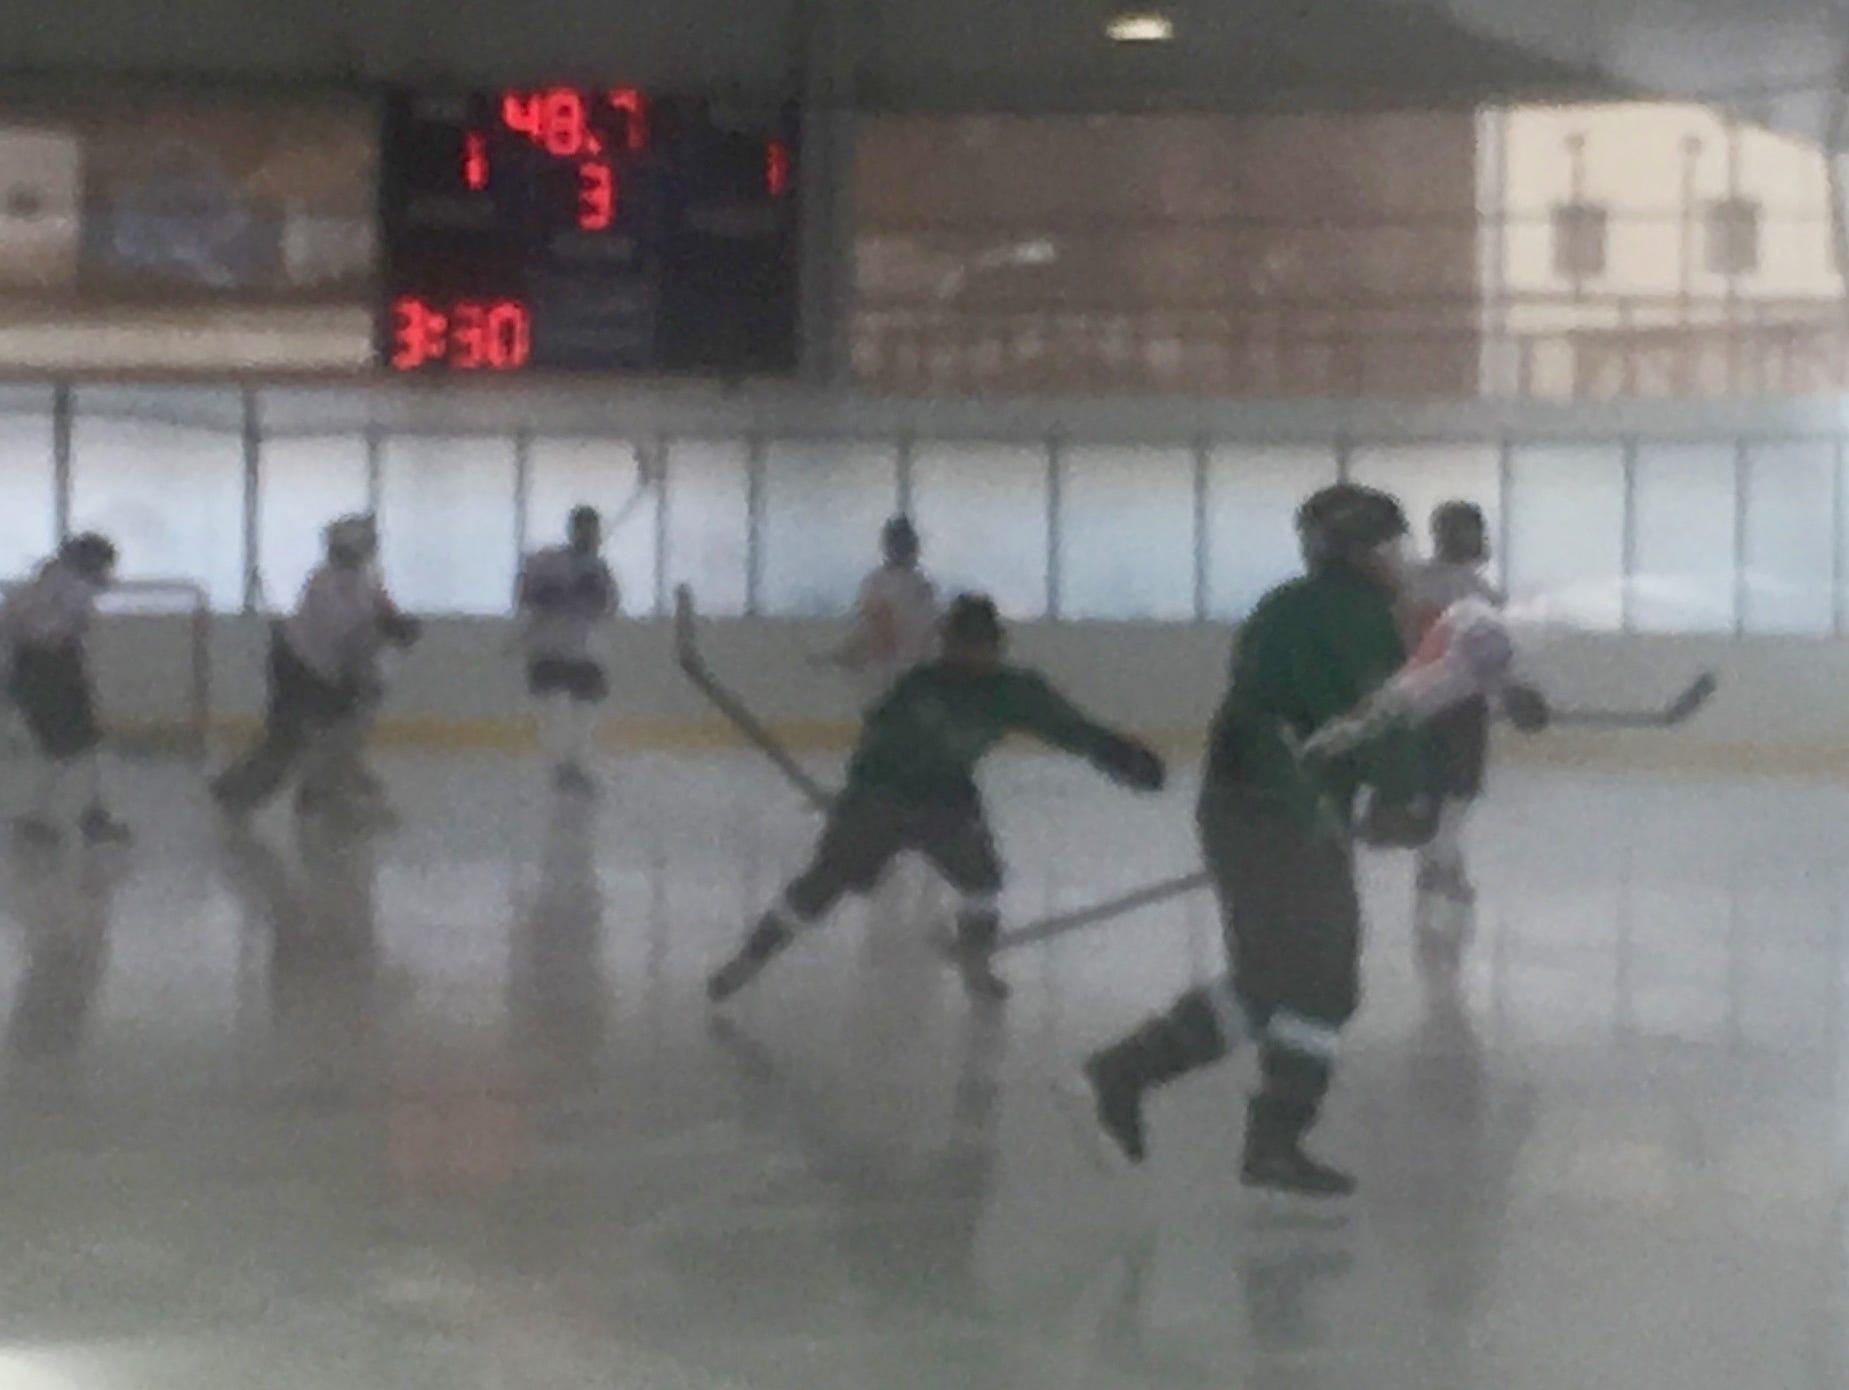 Yorktown beat White Plains 4-2 in a fog in the first game of the Guy Matthews Invitational.